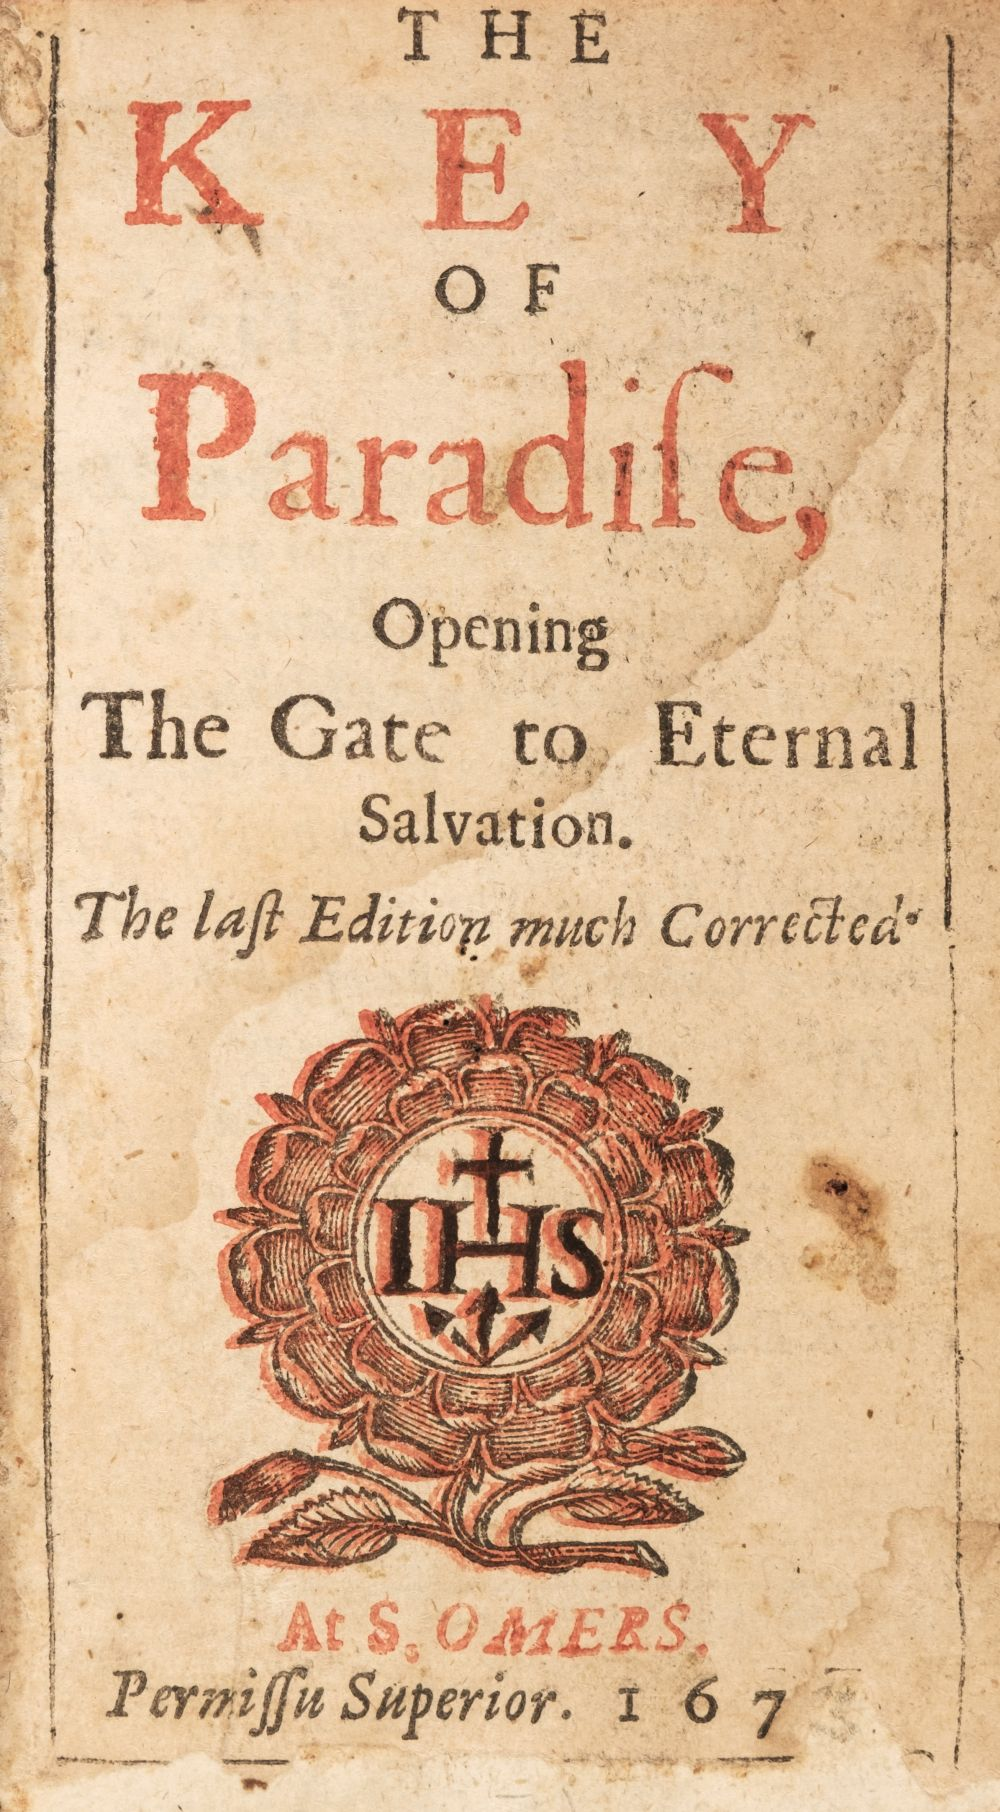 Wilson (John). The Key of Paradise, Opening the Gate to External Salvation..., 1675